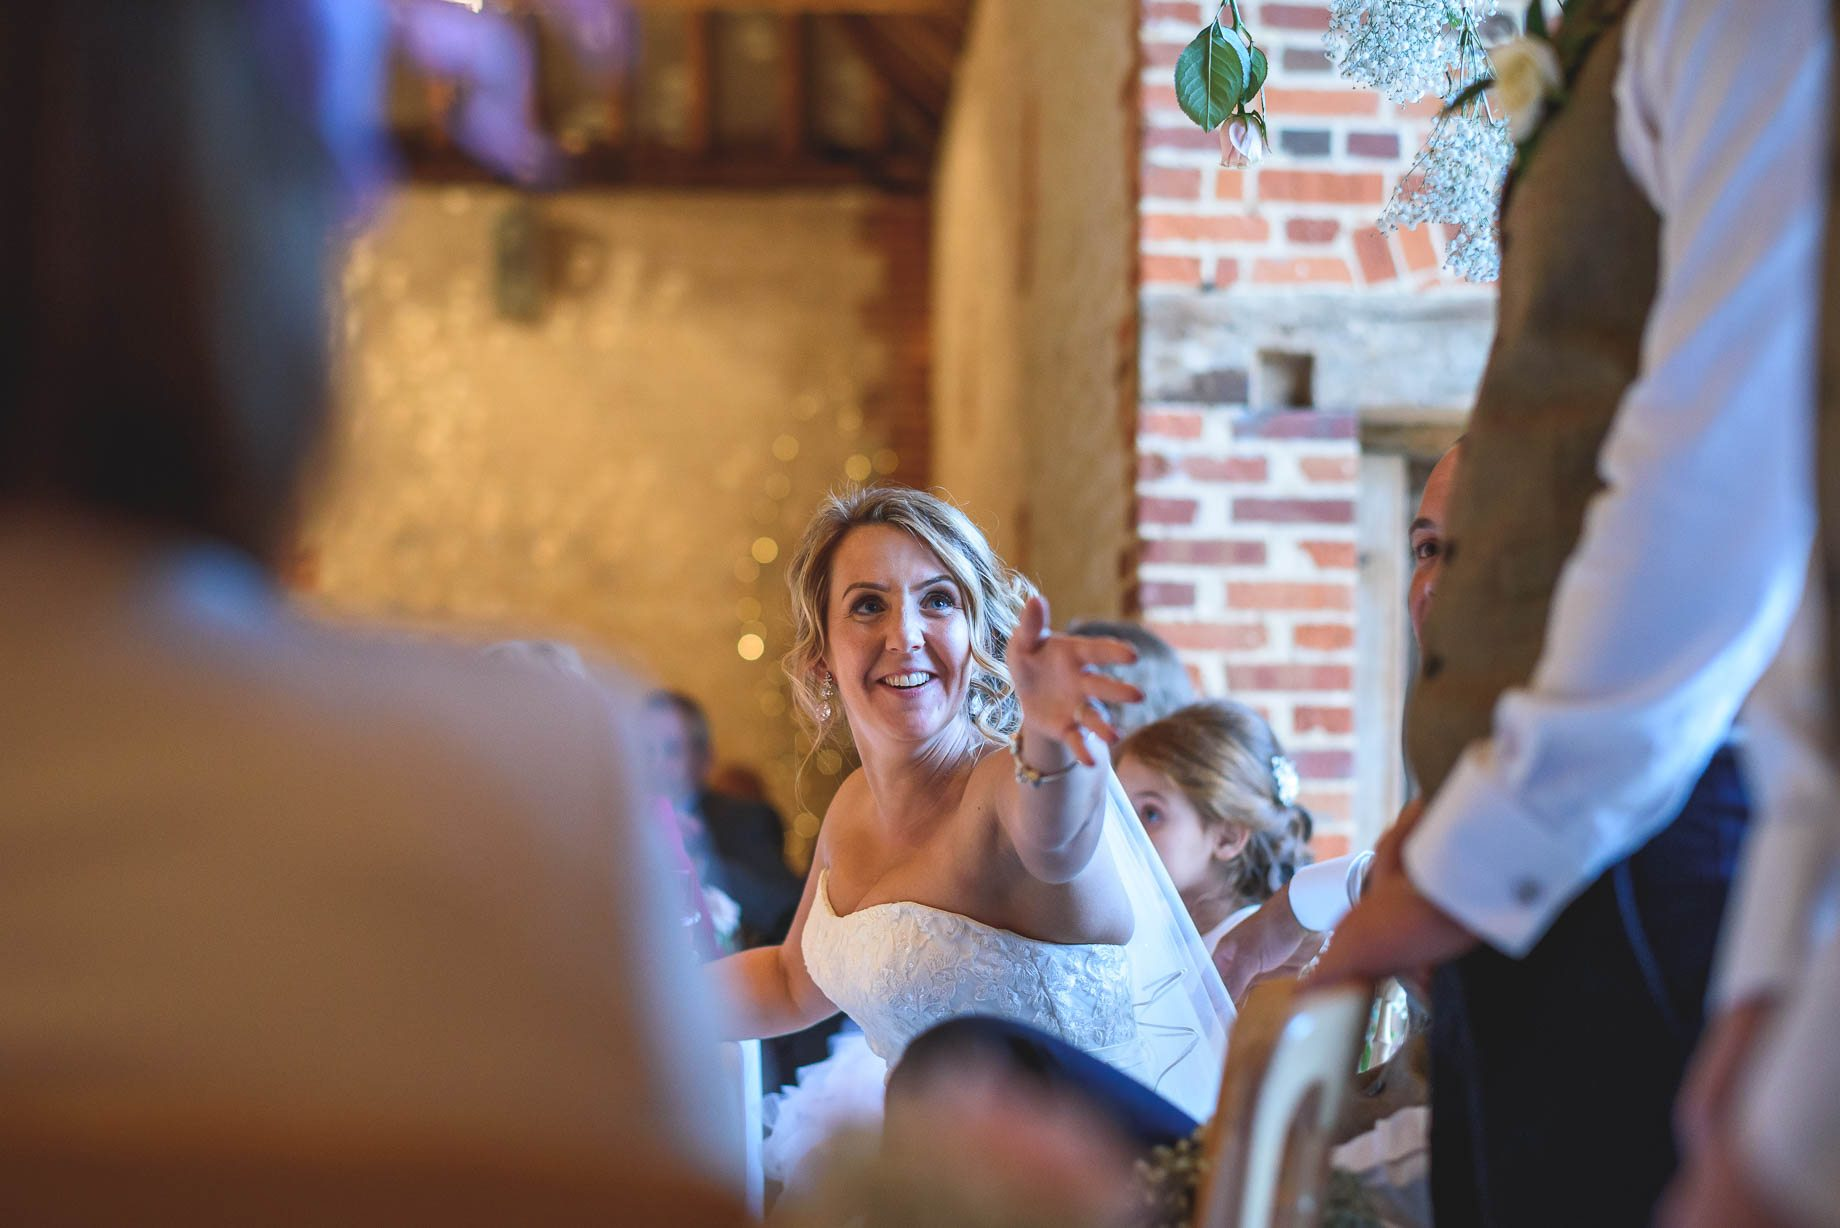 Bury-Court-Barn-wedding-photography-Guy-Collier-Kate-and-Russ-150-of-187